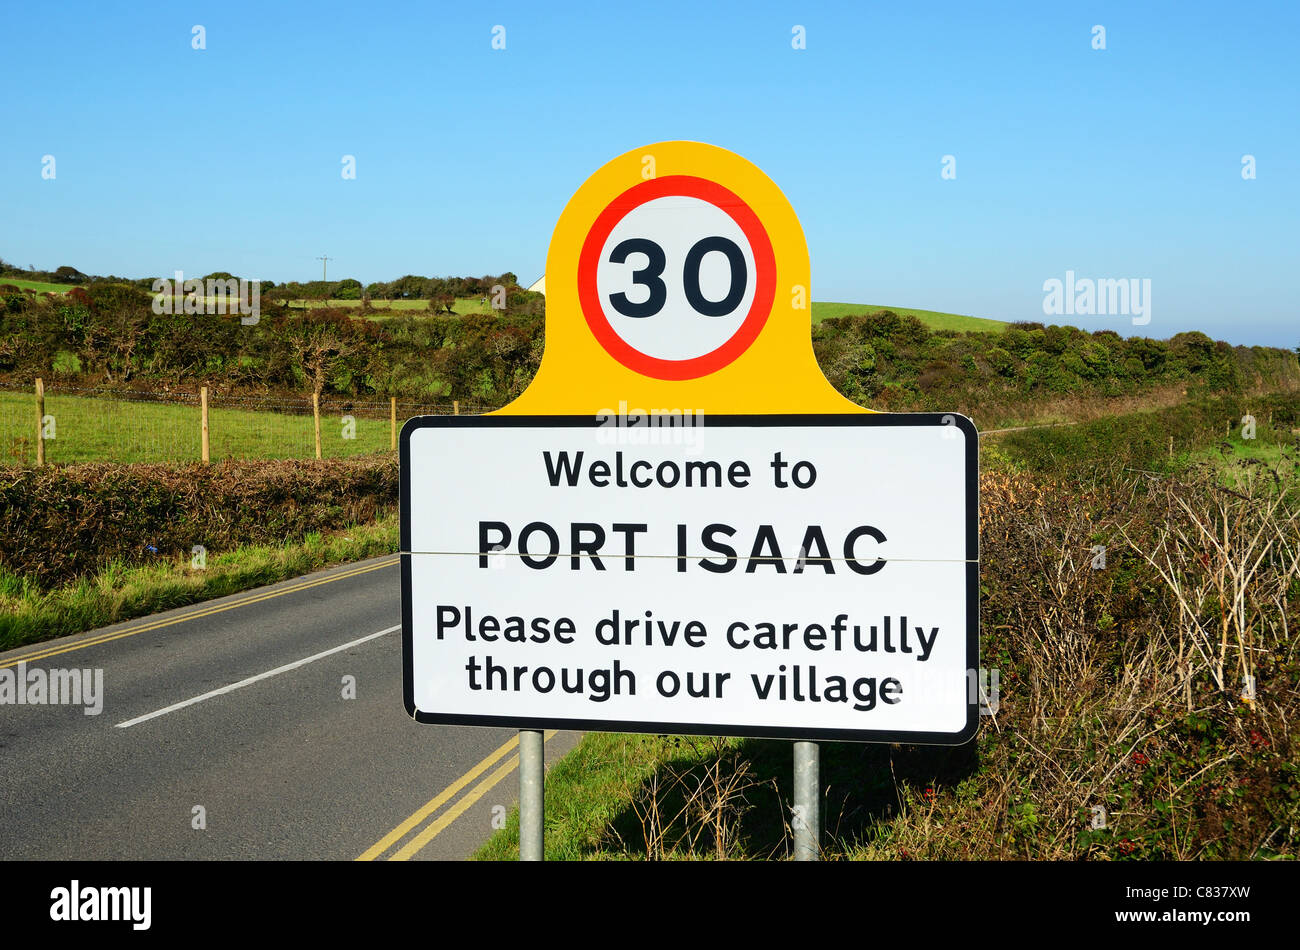 A drive carefully sign on a quiet country road just outside the village of port isaac in north cornwall, uk - Stock Image